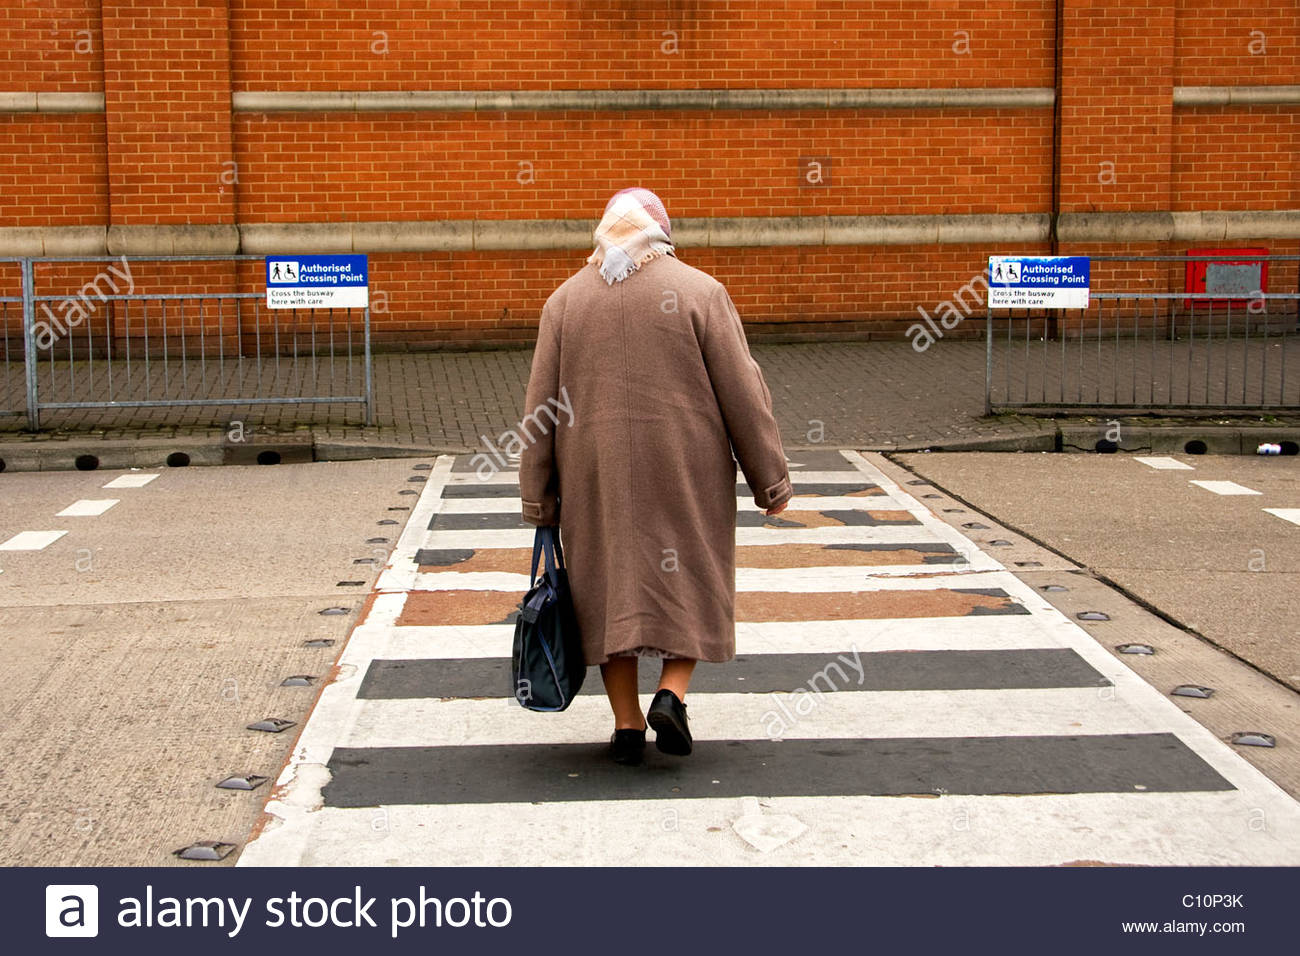 Image result for images of old lady crossing street